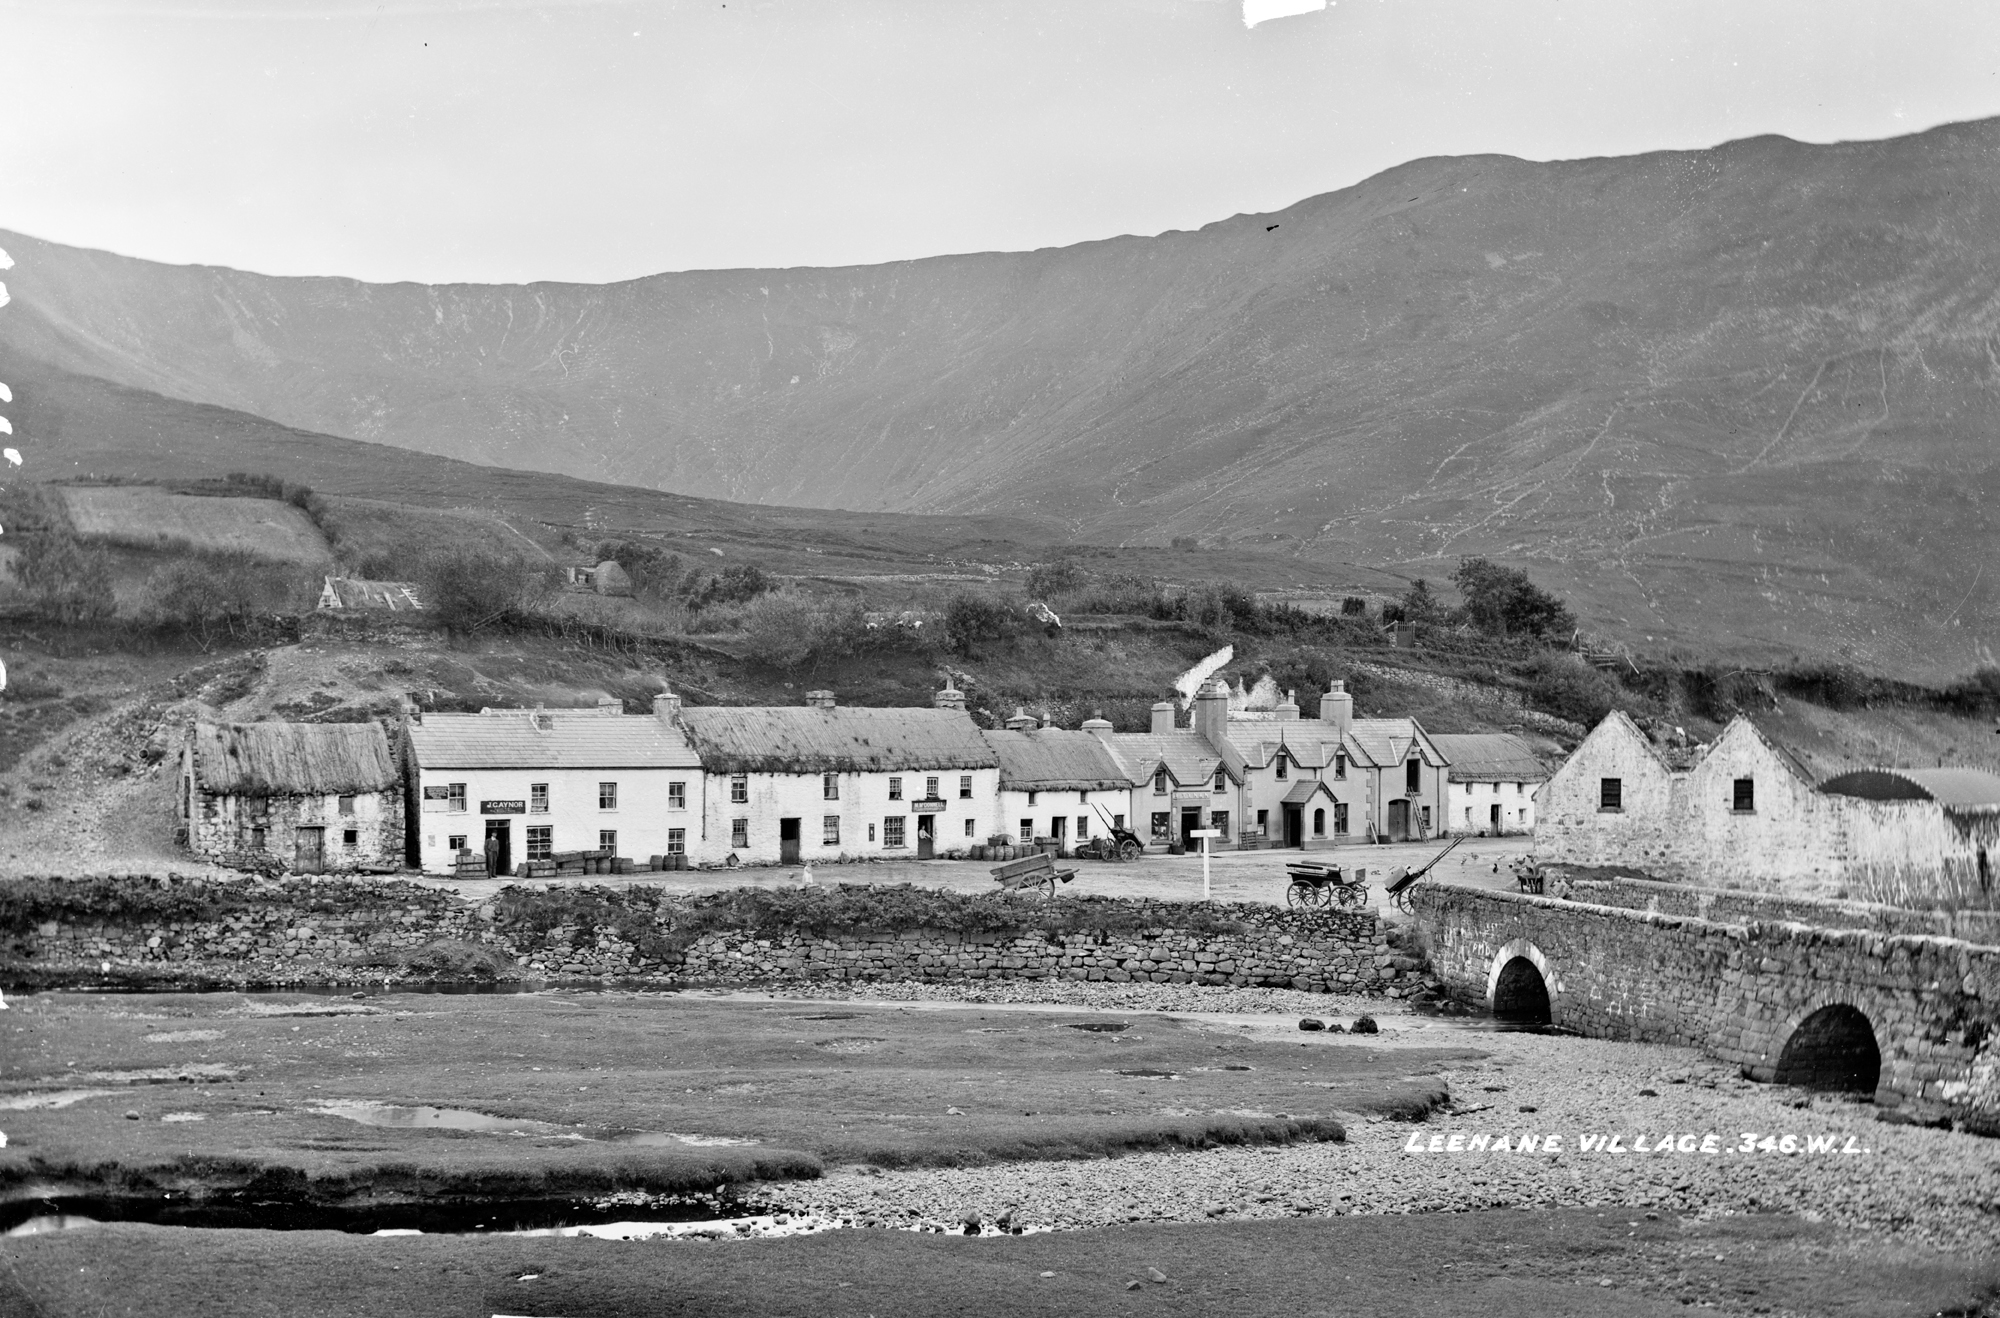 Village of Leenane, County Galway